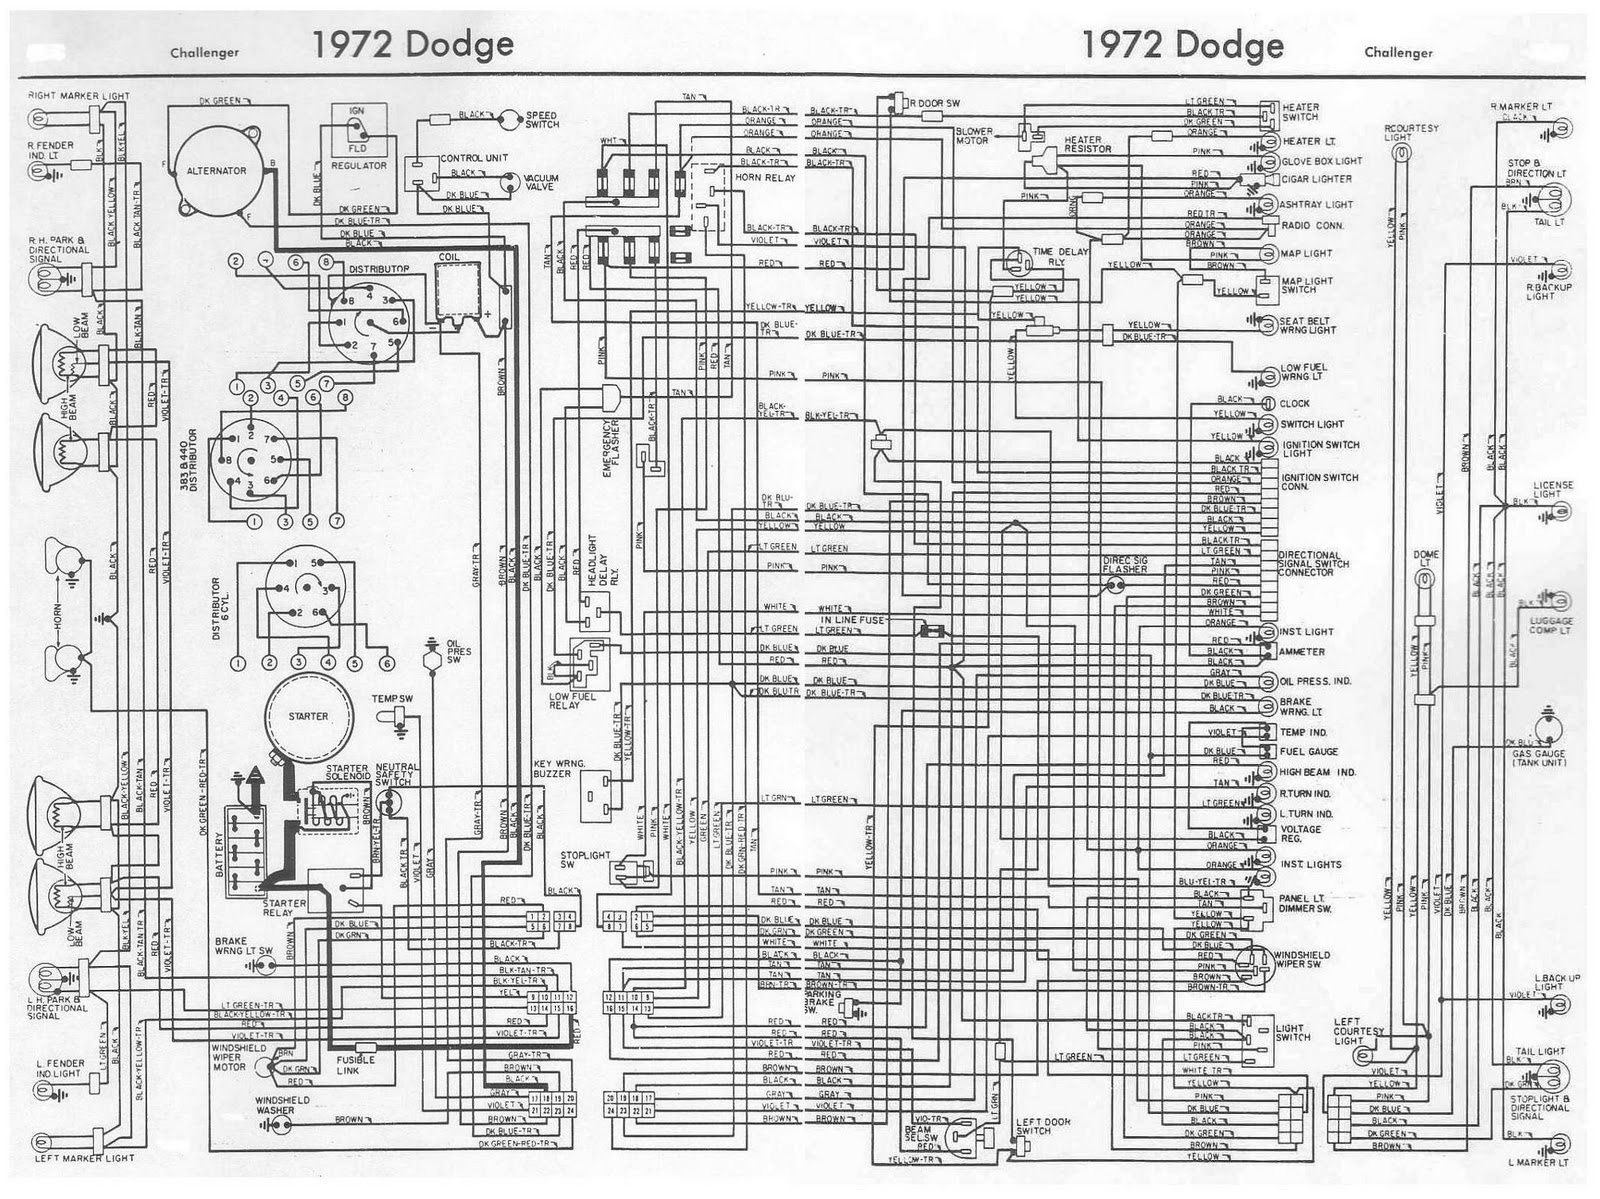 1972 Dodge Dart Wiring Diagram - Wiring Diagram Fascinating on 1970 dodge dart radio, 1996 dodge ram wiring diagram, 1968 plymouth fury wiring diagram, 1970 dodge dart seats, 1964 dodge dart wiring diagram, 1970 dodge dart rally dash, 1970 dodge dart headlights, 1970 dodge dart engine, 1970 dodge dart drive shaft, 1993 dodge d150 wiring diagram, 1973 dodge challenger wiring diagram, 1974 plymouth duster wiring diagram, 1970 dodge dart fuel tank, 1963 dodge dart wiring diagram, 1974 dodge challenger wiring diagram, 1973 dodge dart wiring diagram, 1970 dodge dart exhaust system, 1970 dodge dart manual, 1970 dodge dart colors, 1970 dodge dart radiator,